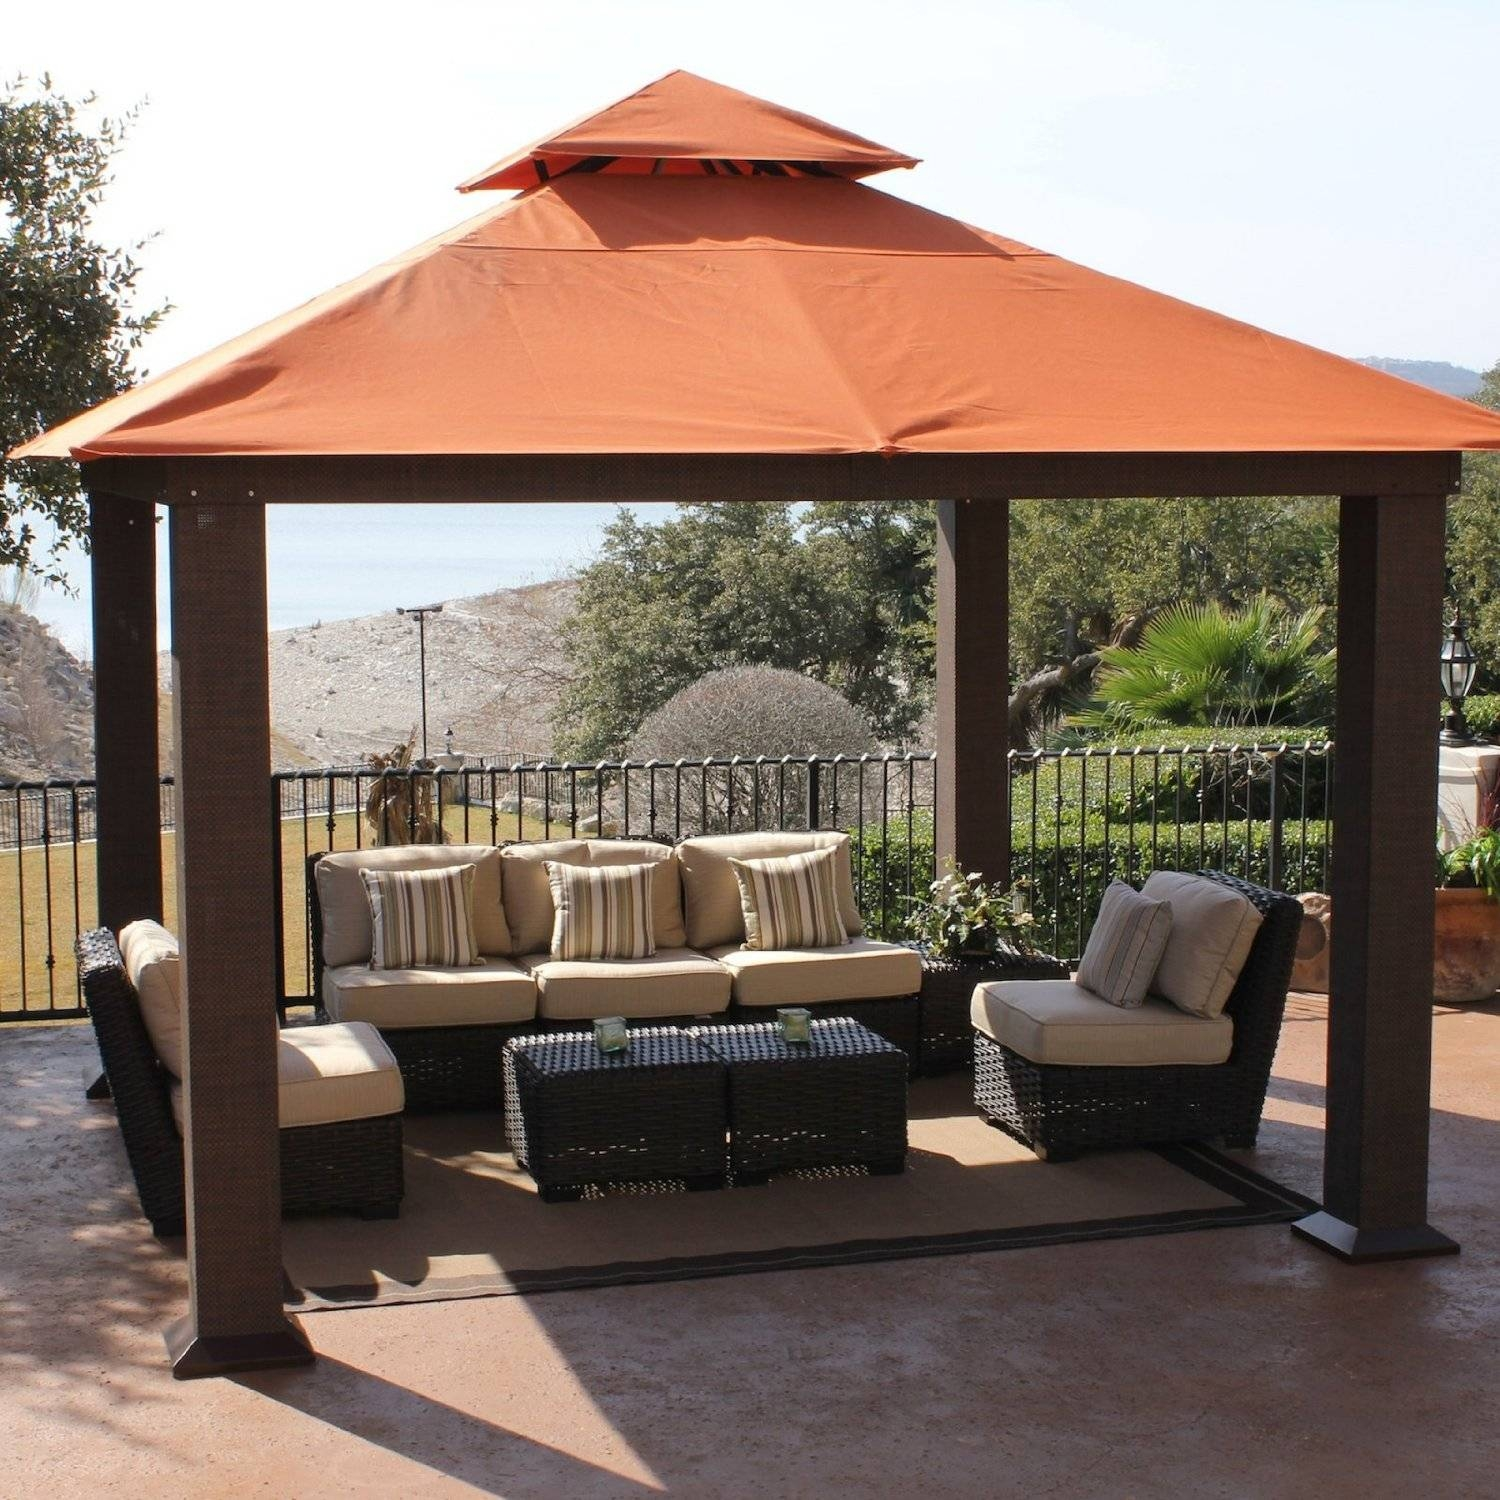 Patio Gazebo Canopy | Patio Decoration inside Outdoor Sofas With Canopy (Image 28 of 30)